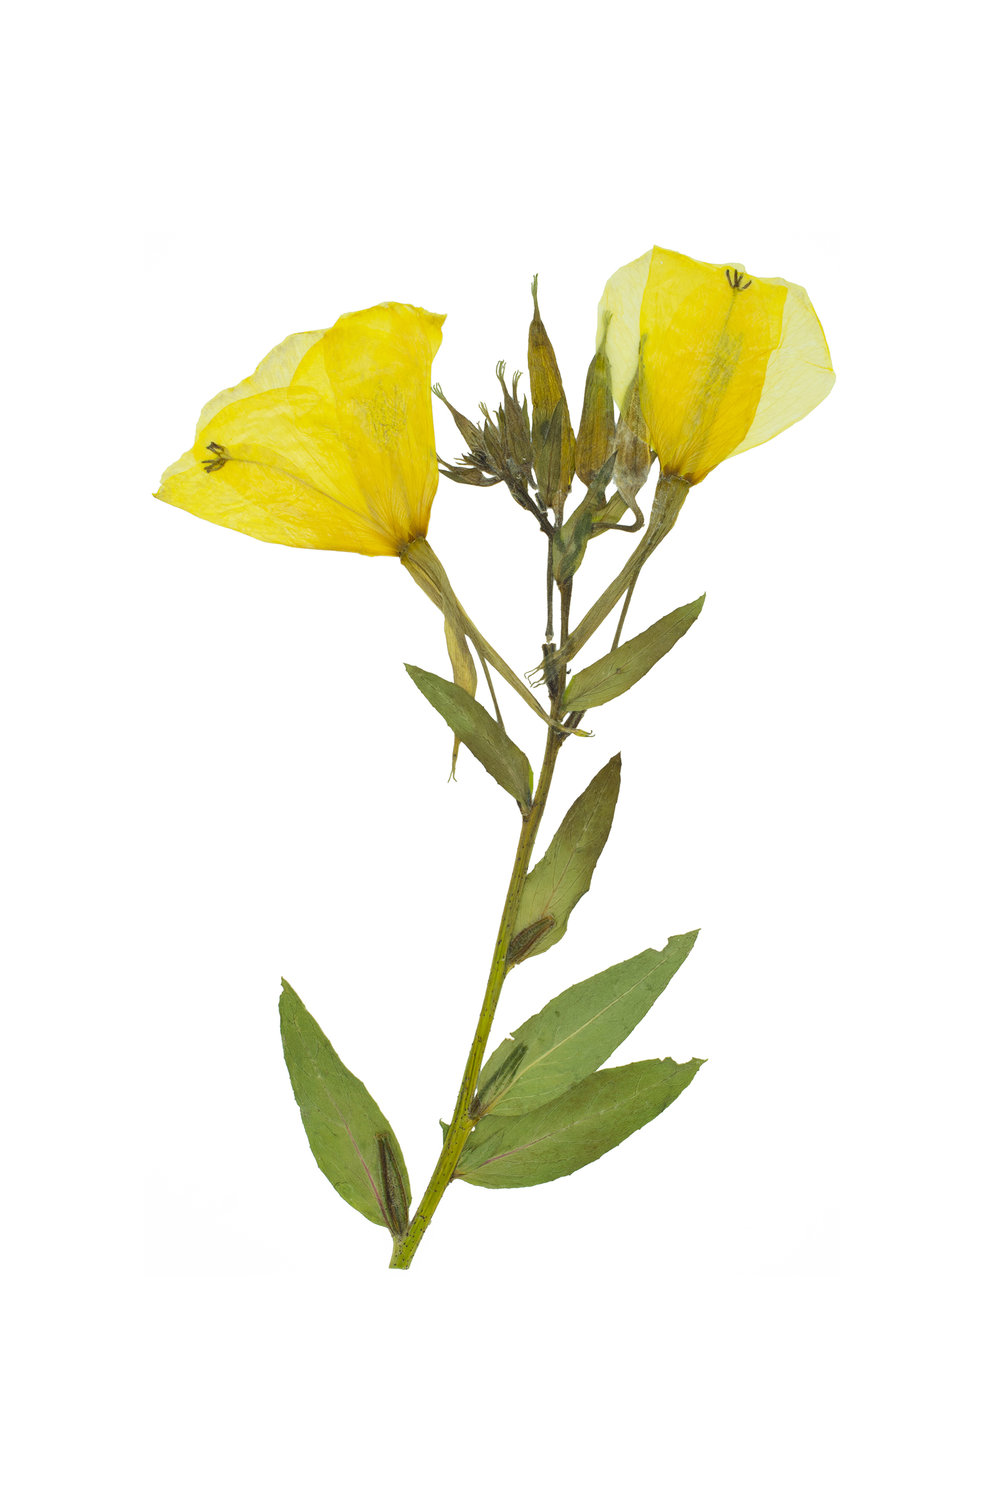 Oenothera glazioviana / Large-Flowered Evening Primrose